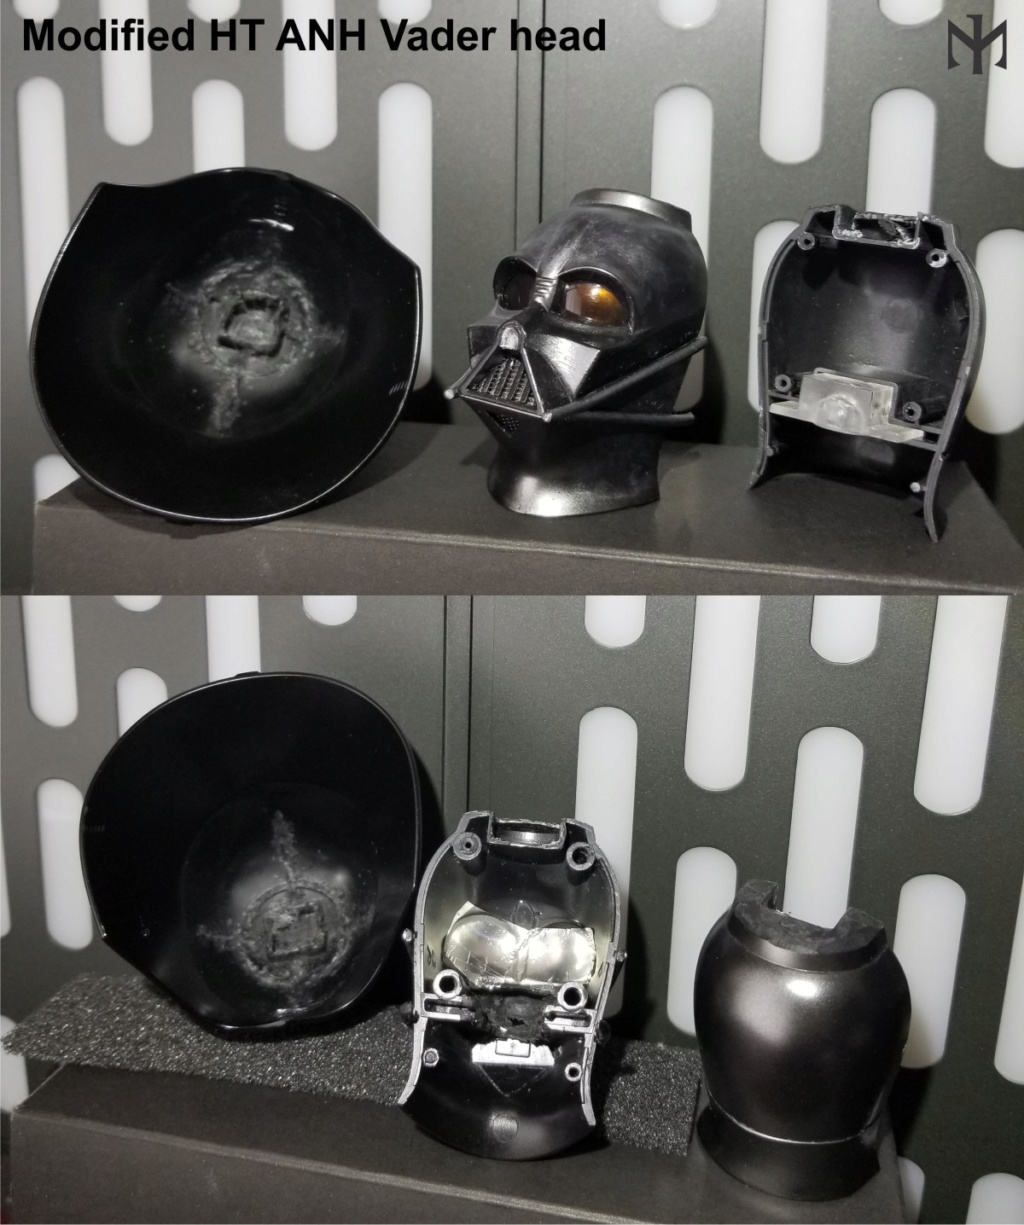 kitbash - STAR WARS New customizing Hot Toys ESB Vader head Htdvan10